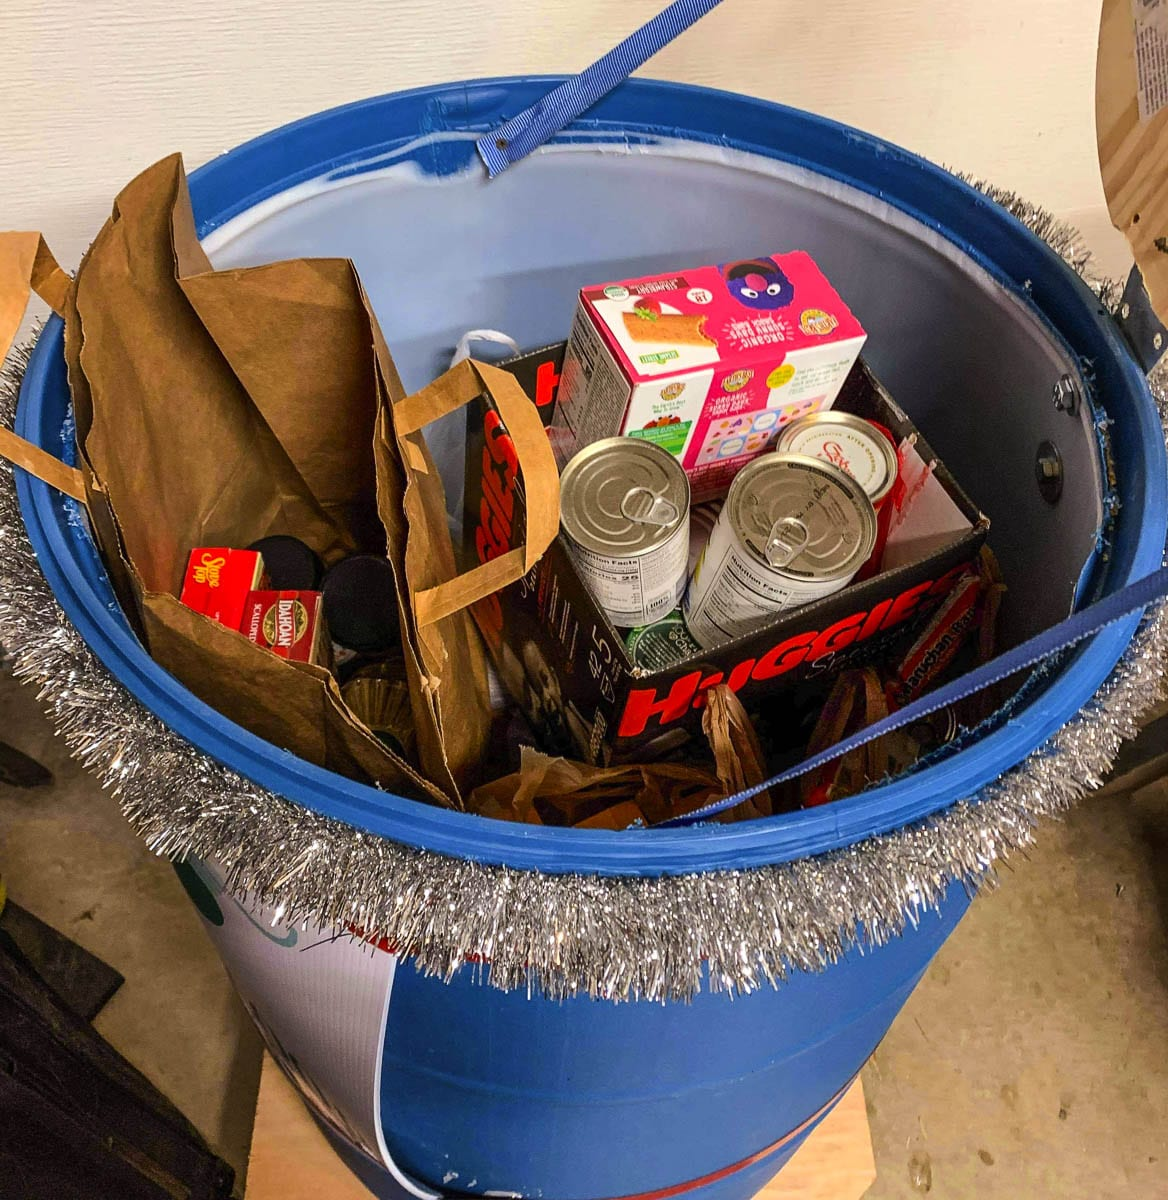 Generous donations enabled the FCRC to make food and supply buckets for the needy. Photo courtesy of Woodland School District